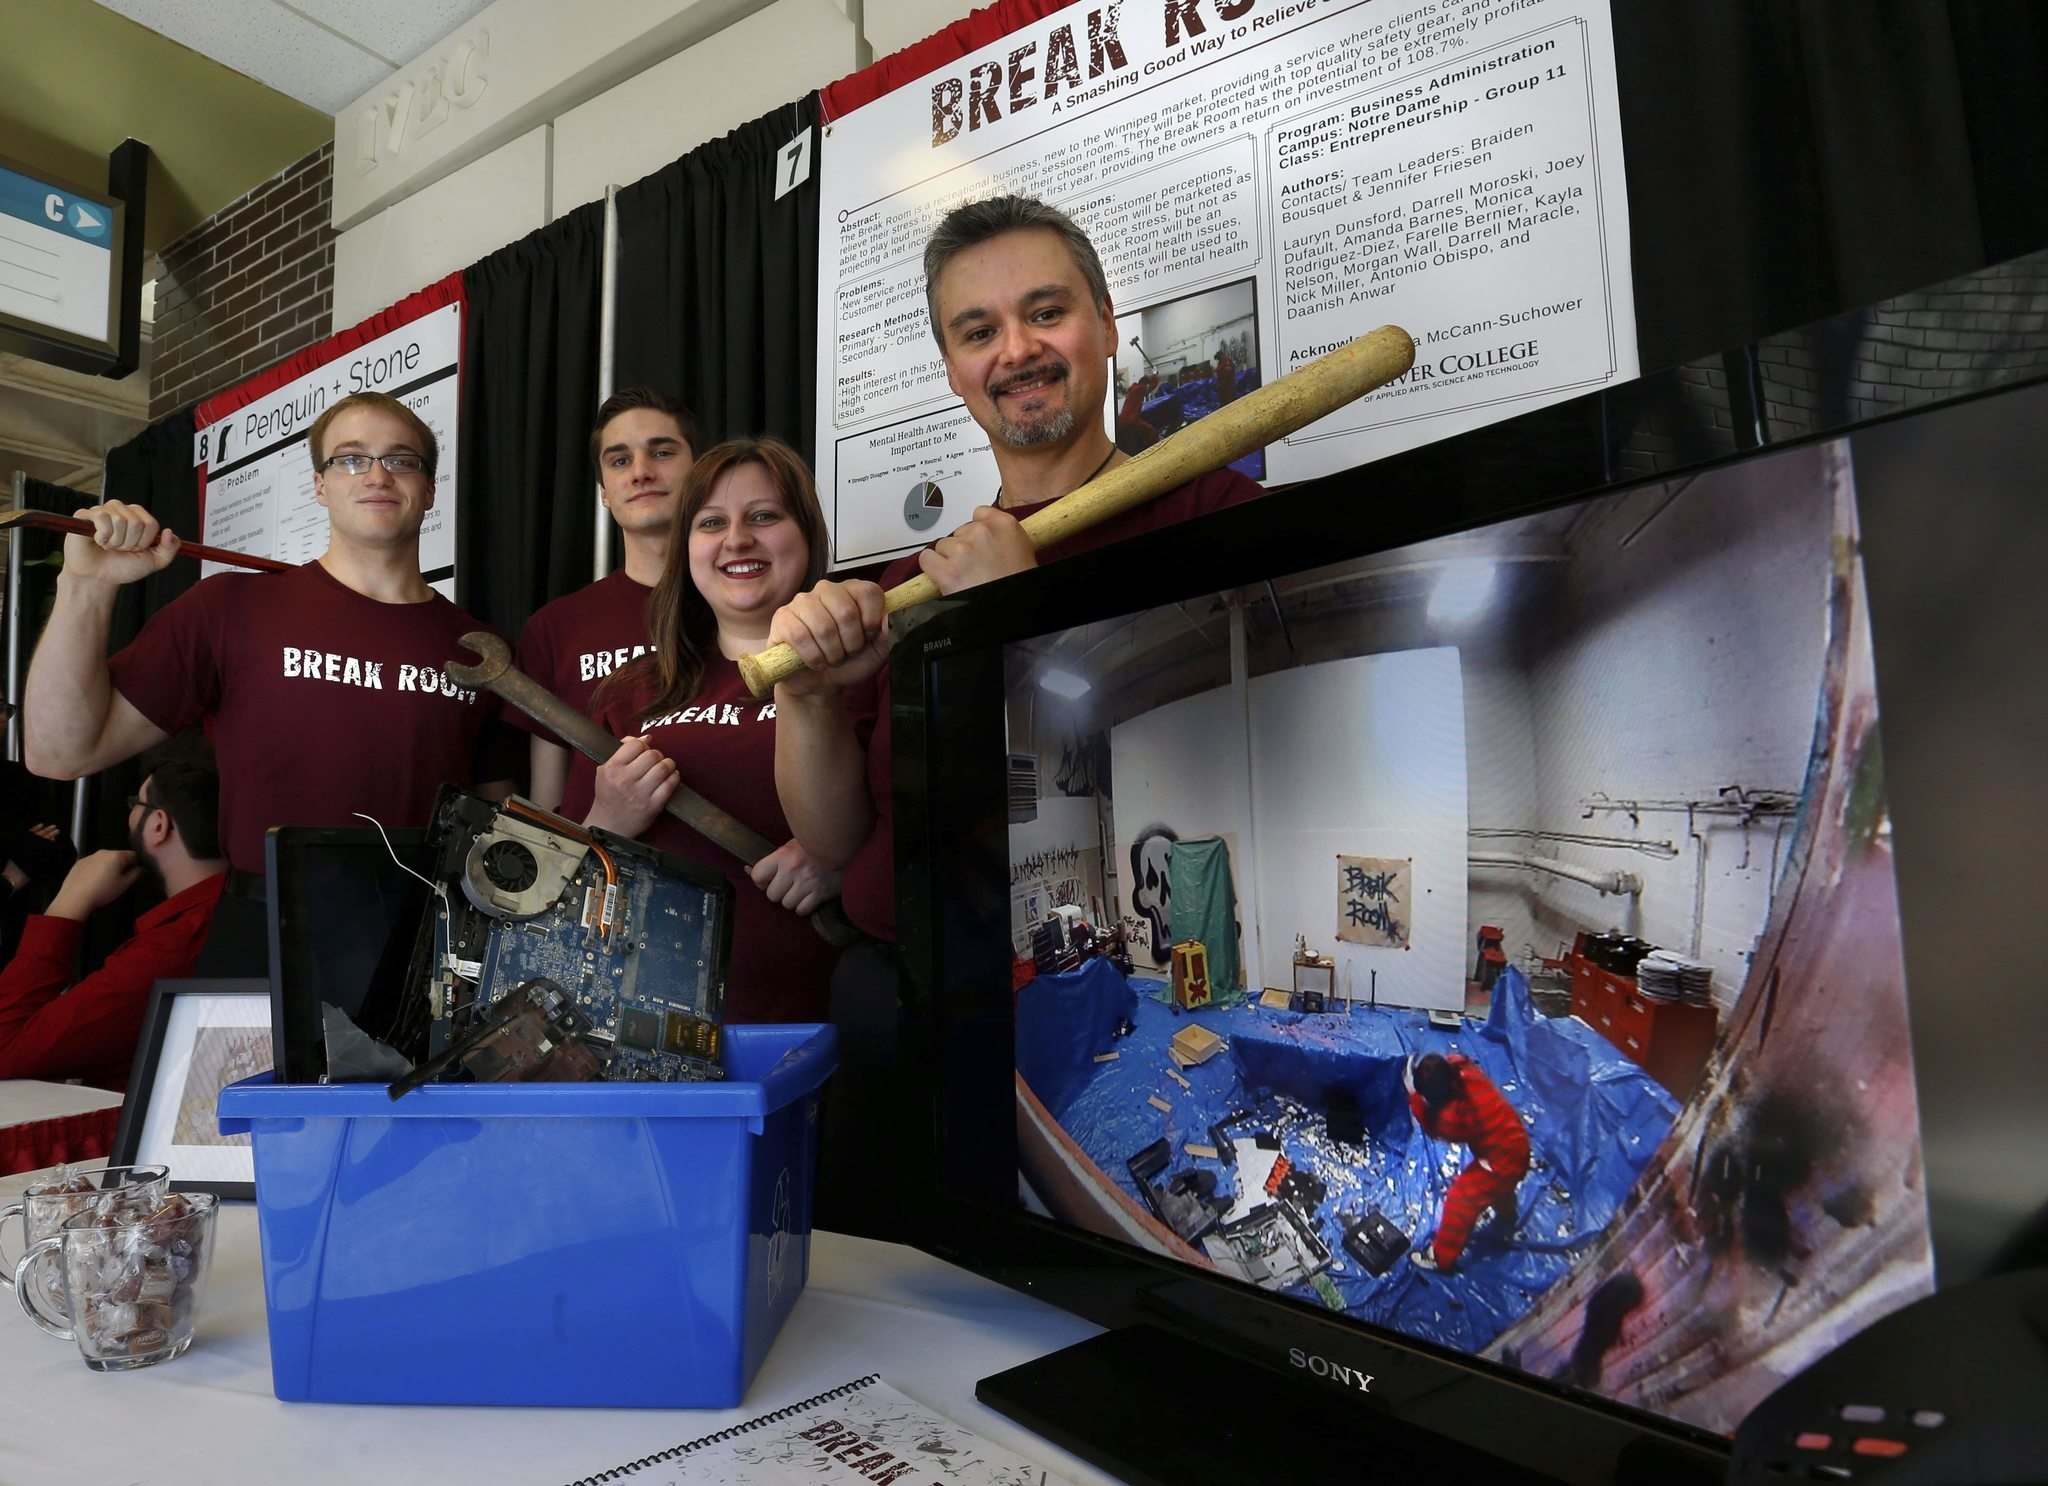 WAYNE GLOWACKI / WINNIPEG FREE PRESS</p><p>Red River students Darrell Moroski (from right), Jennifer Friesen, Braiden Bousquet and Joey Dufault are part of a team of 14 that created the Break Room, where people can relieve stress by breaking things.</p>